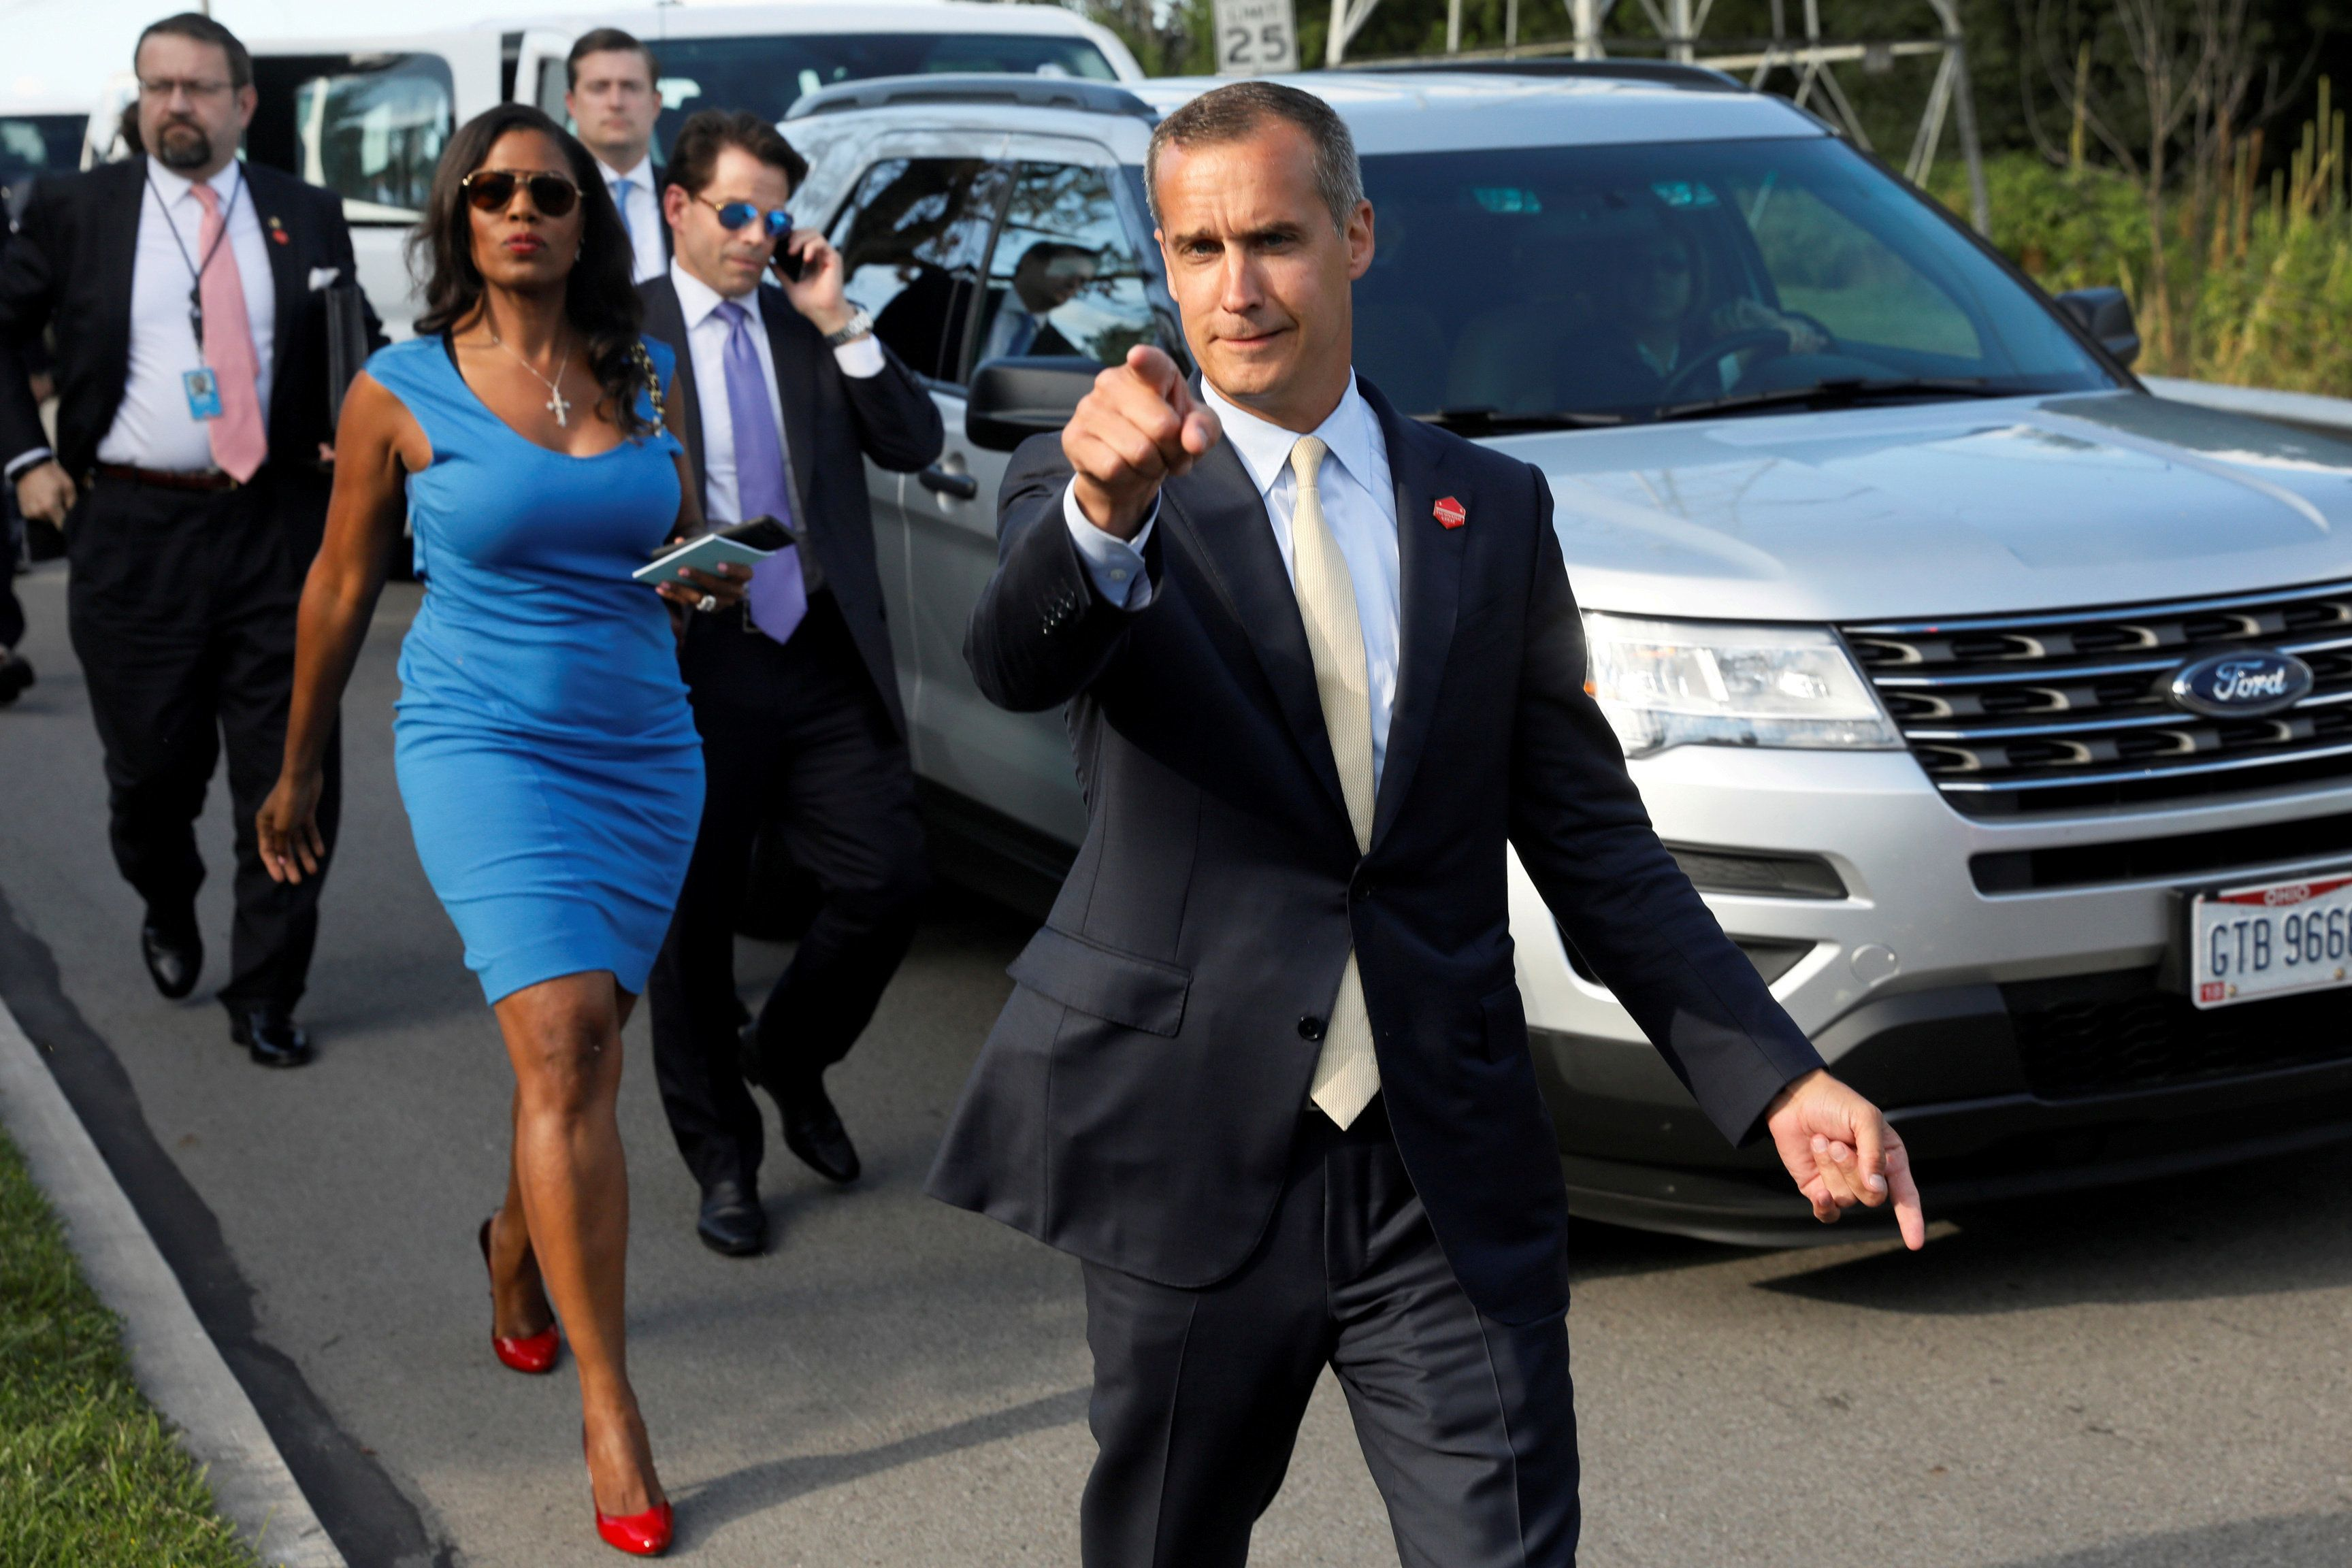 "Former campaign manager Corey Lewandowski (C) says hello to reporters as he and White House advisors Sebastian Gorka (from L), Omarosa Manigault, White House Staff Secretary Rob Porter and Communications Director Anthony Scaramucci accompany President Trump for an event celebrating veterans at AMVETS Post 44 in Struthers, Ohio, U.S., July 25, 2017. Jonathan Ernst: ""The most visible person in any White House is naturally the President, followed by the press secretary. But there are also the staff who support them, any one of whom might suddenly jump into public view and be national news for a day or two. For those of us covering the President Trump administration, there seem to be more compelling figures in the West Wing than ever before. It's crucial to know who's who and why they're important. When I raised my camera and back-pedalled ahead of the group to take this image Lewandowski gave me a hello and pointed right into the lens. I liked the photo, but had no idea it would go a little bit viral, especially since Scaramucci, who was the biggest mover and shaker that week, was hidden back in the pack. But I guess the image catches a glimpse of what it's like to be a West Wing staffer on the road.""REUTERS/Jonathan Ernst/File photo  SEARCH ""POY STORY"" FOR THIS STORY. SEARCH ""REUTERS POY"" FOR ALL BEST OF 2017 PACKAGES. TPX IMAGES OF THE DAY."